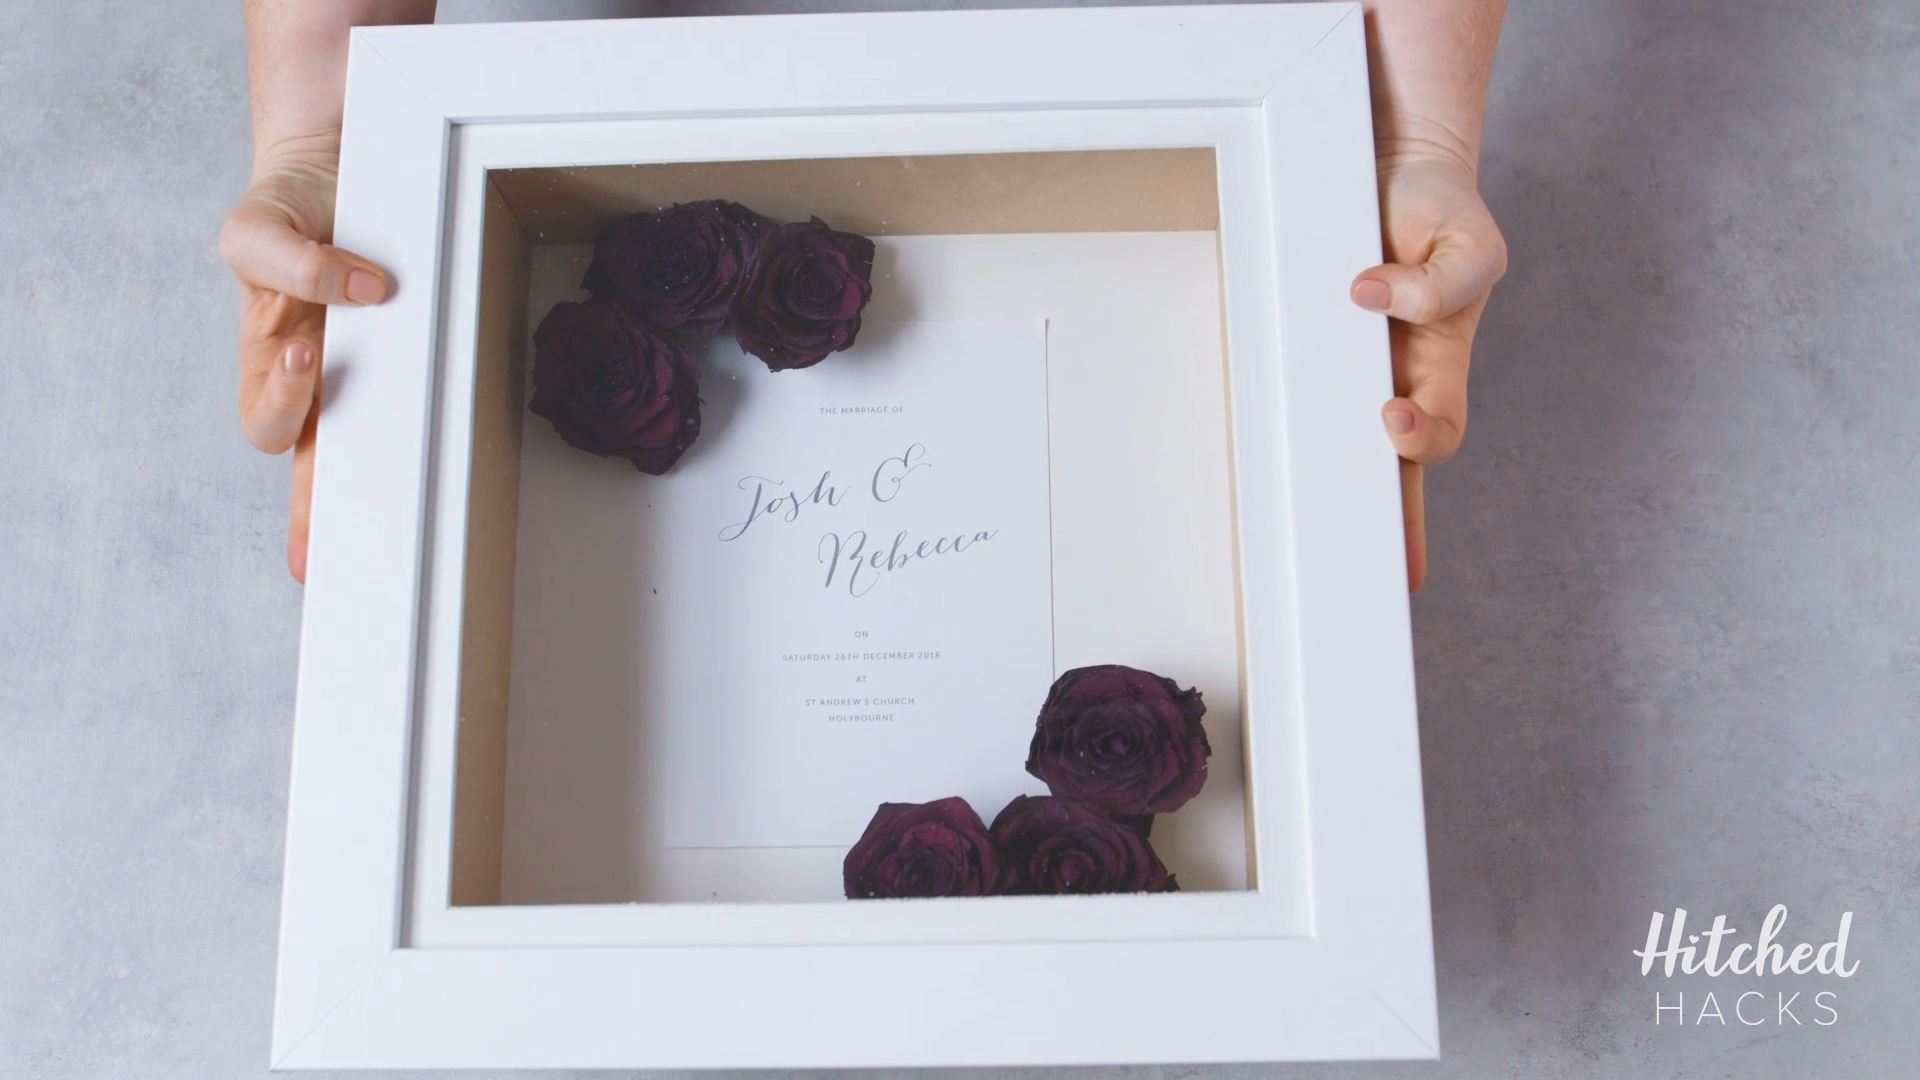 Hitched Hacks How to Preserve and Frame Your Wedding Flowers is part of Wedding bouquet preservation - Watch our video for an easy tutorial on how to preserve your wedding flowers and the best way to mount your dried flowers in a frame so they last forever